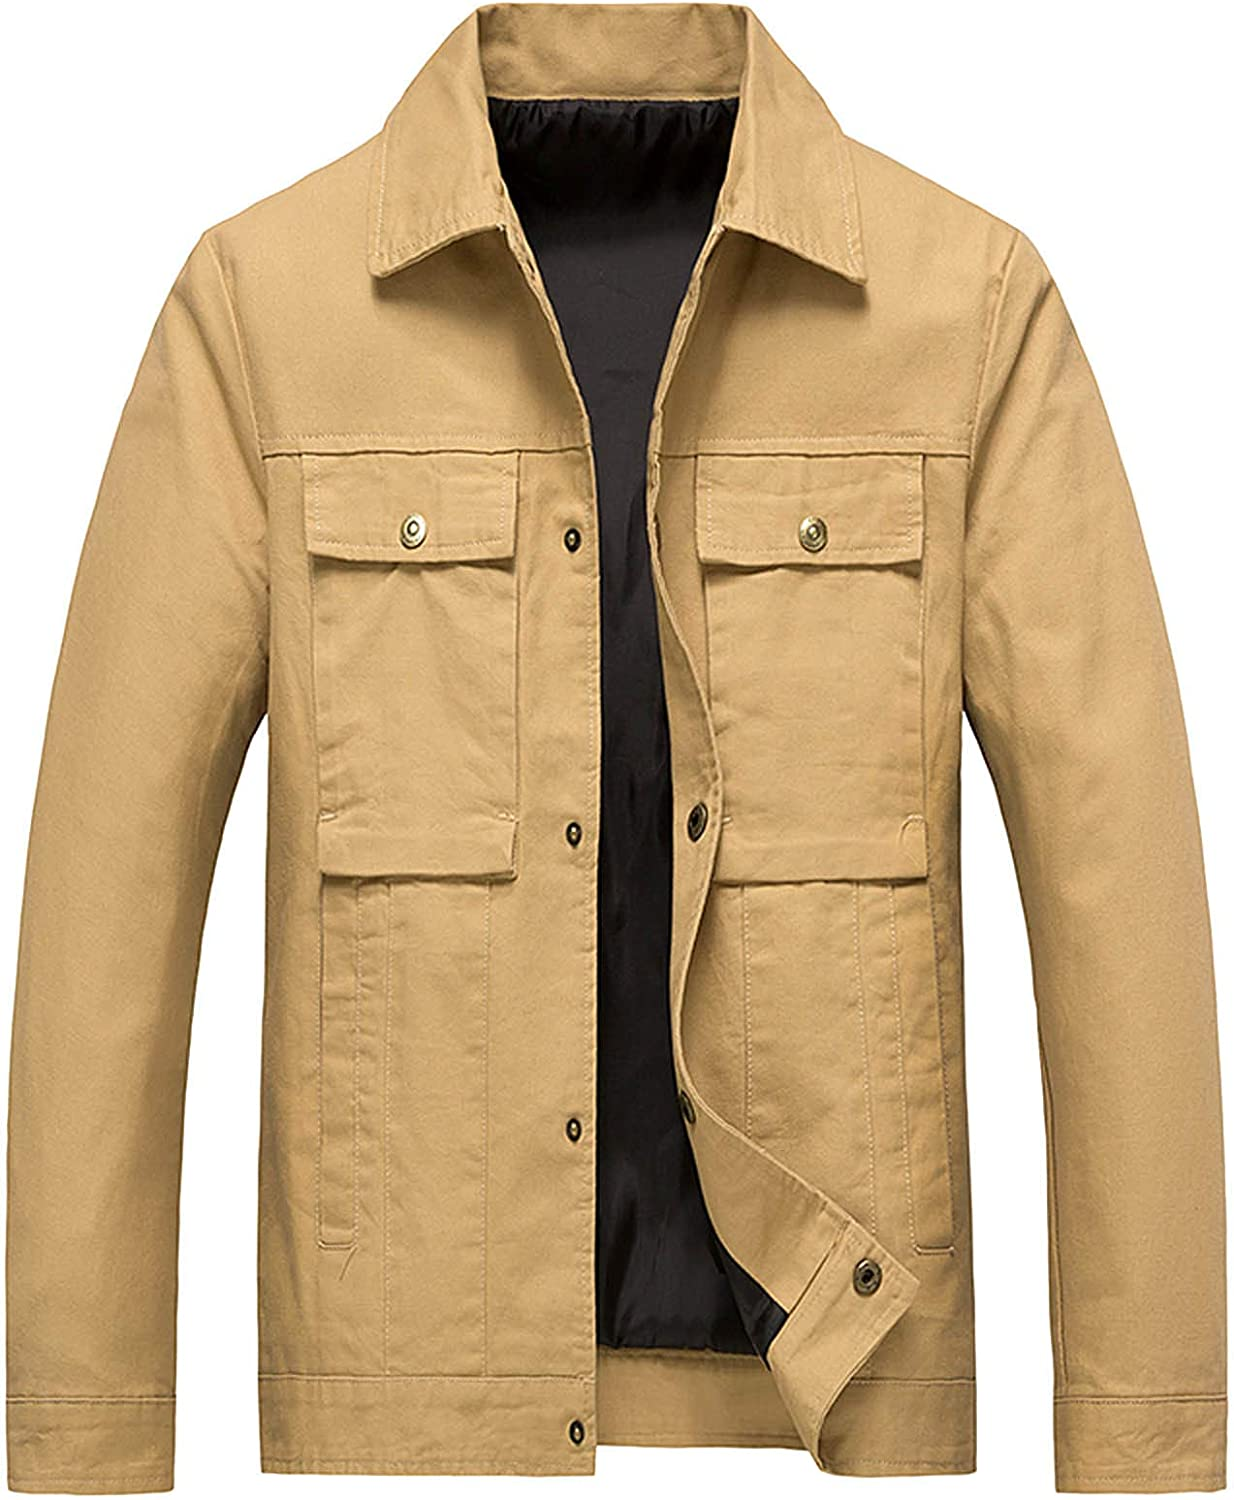 Men's Straight Trench Jacket Windproof Pea Coat with Pockets Solid Color Casual Coats Button Down Jacket